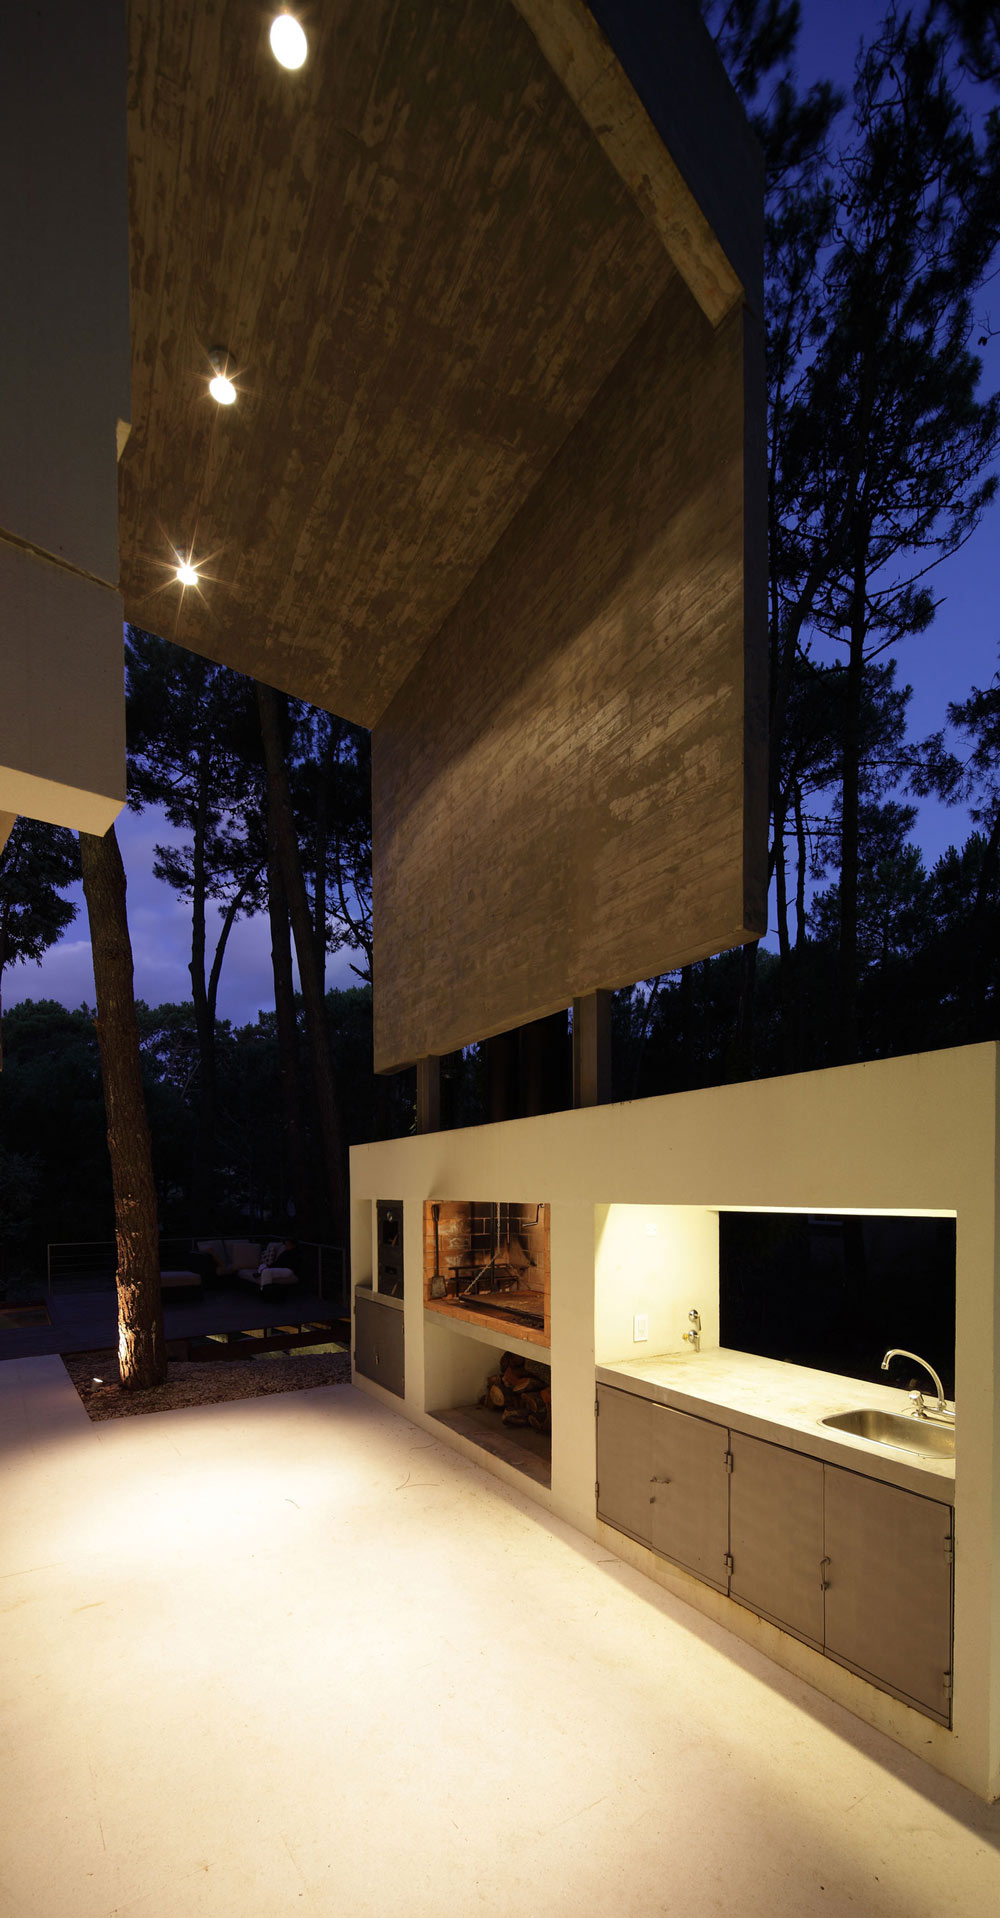 Outdoor Sink, Fireplace, Modern Concrete House in Cariló, Argentina